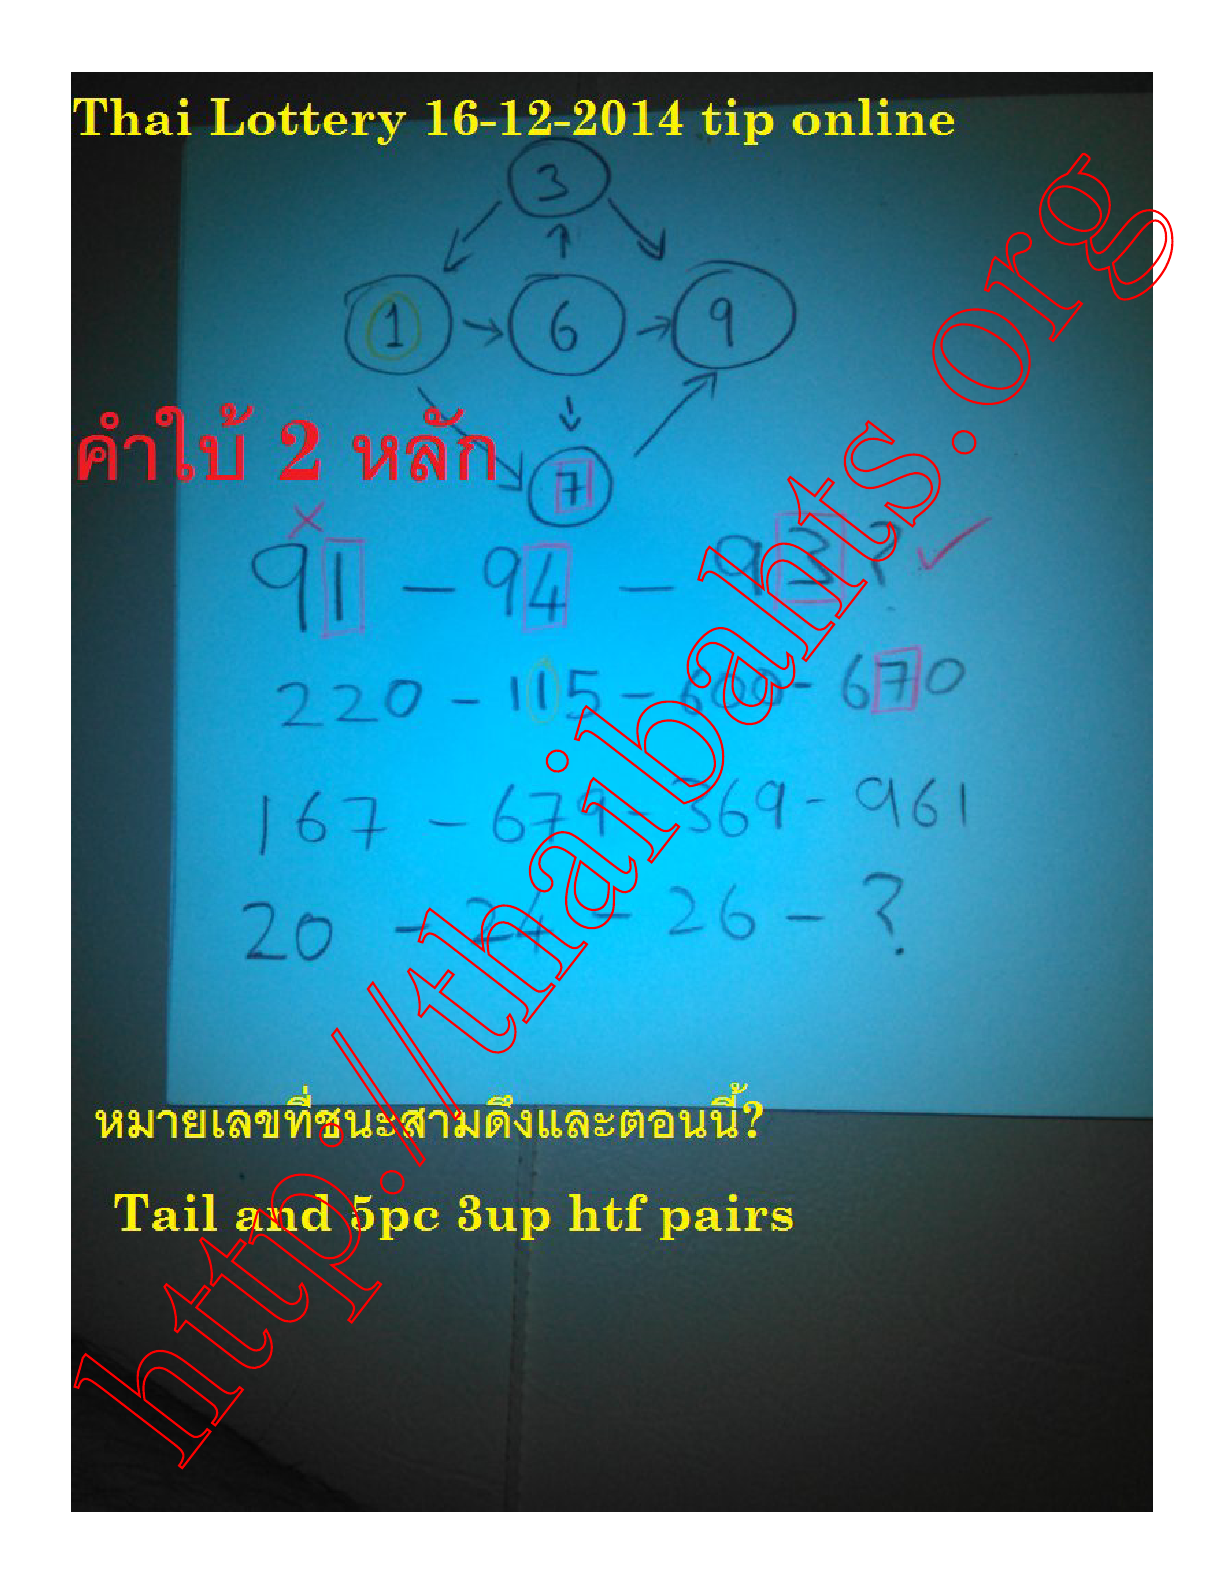 Thai lottery 16-12-2014 hot online tip